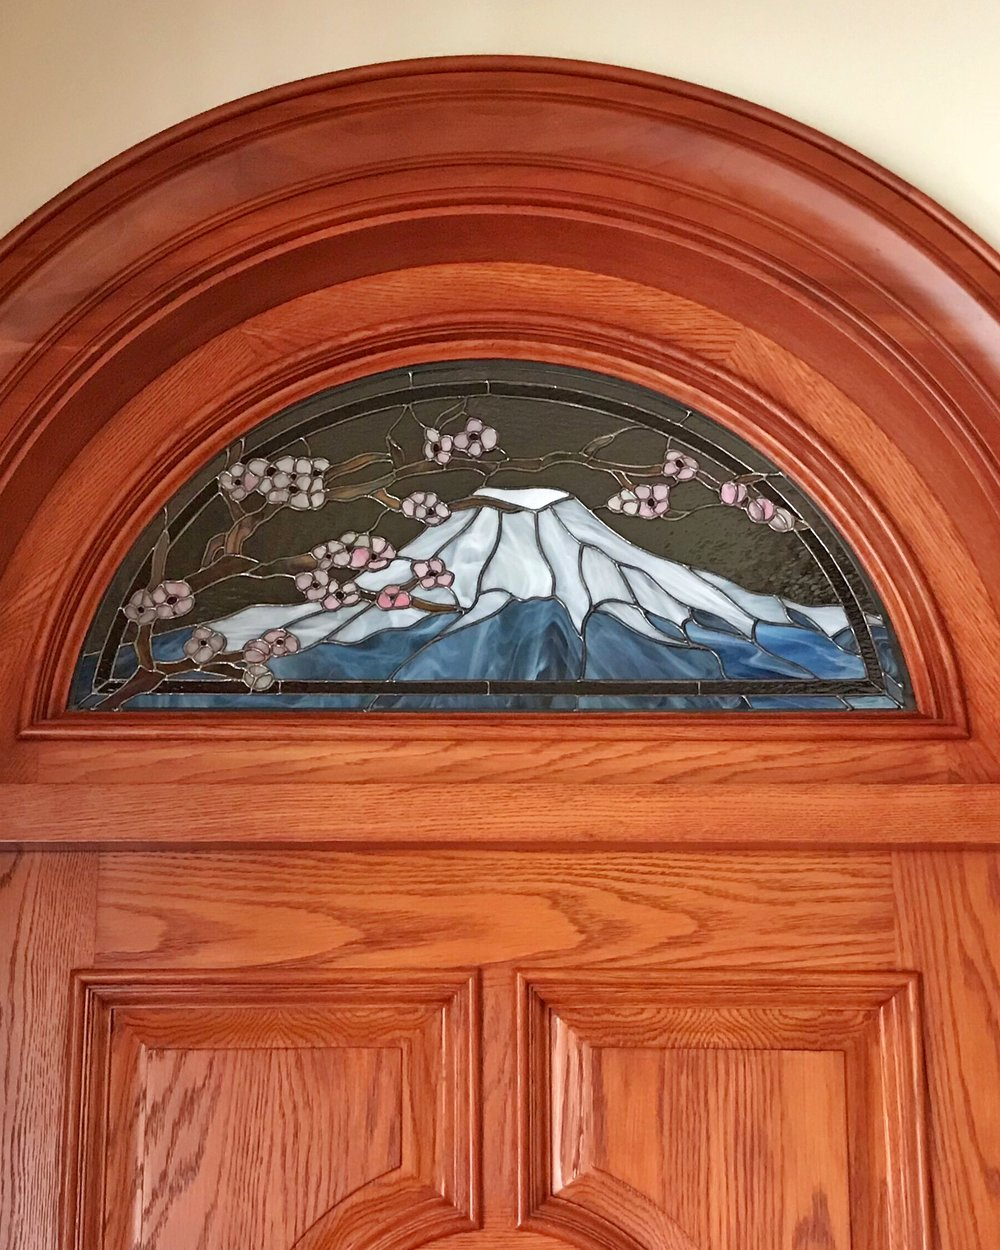 mt fuji stained glass copper foil design spectrum glass transom door custom art glass legacy glass studios california portola valley bay area.jpg